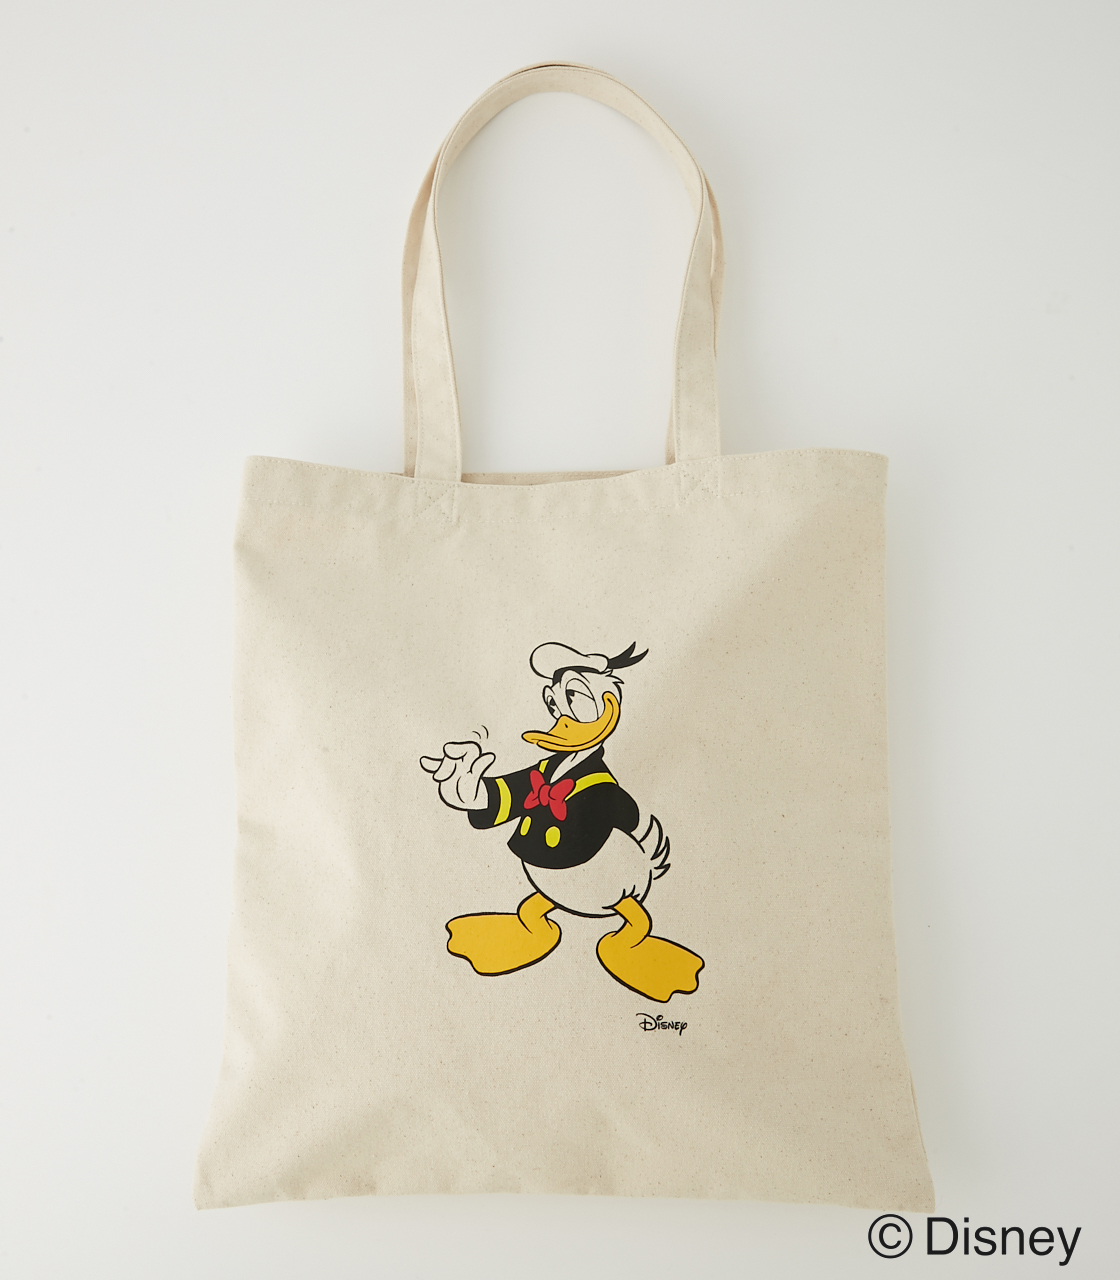 DONALD DUCK TOTE BAG/ドナルドダックトートバッグ 詳細画像 O/WHT 1